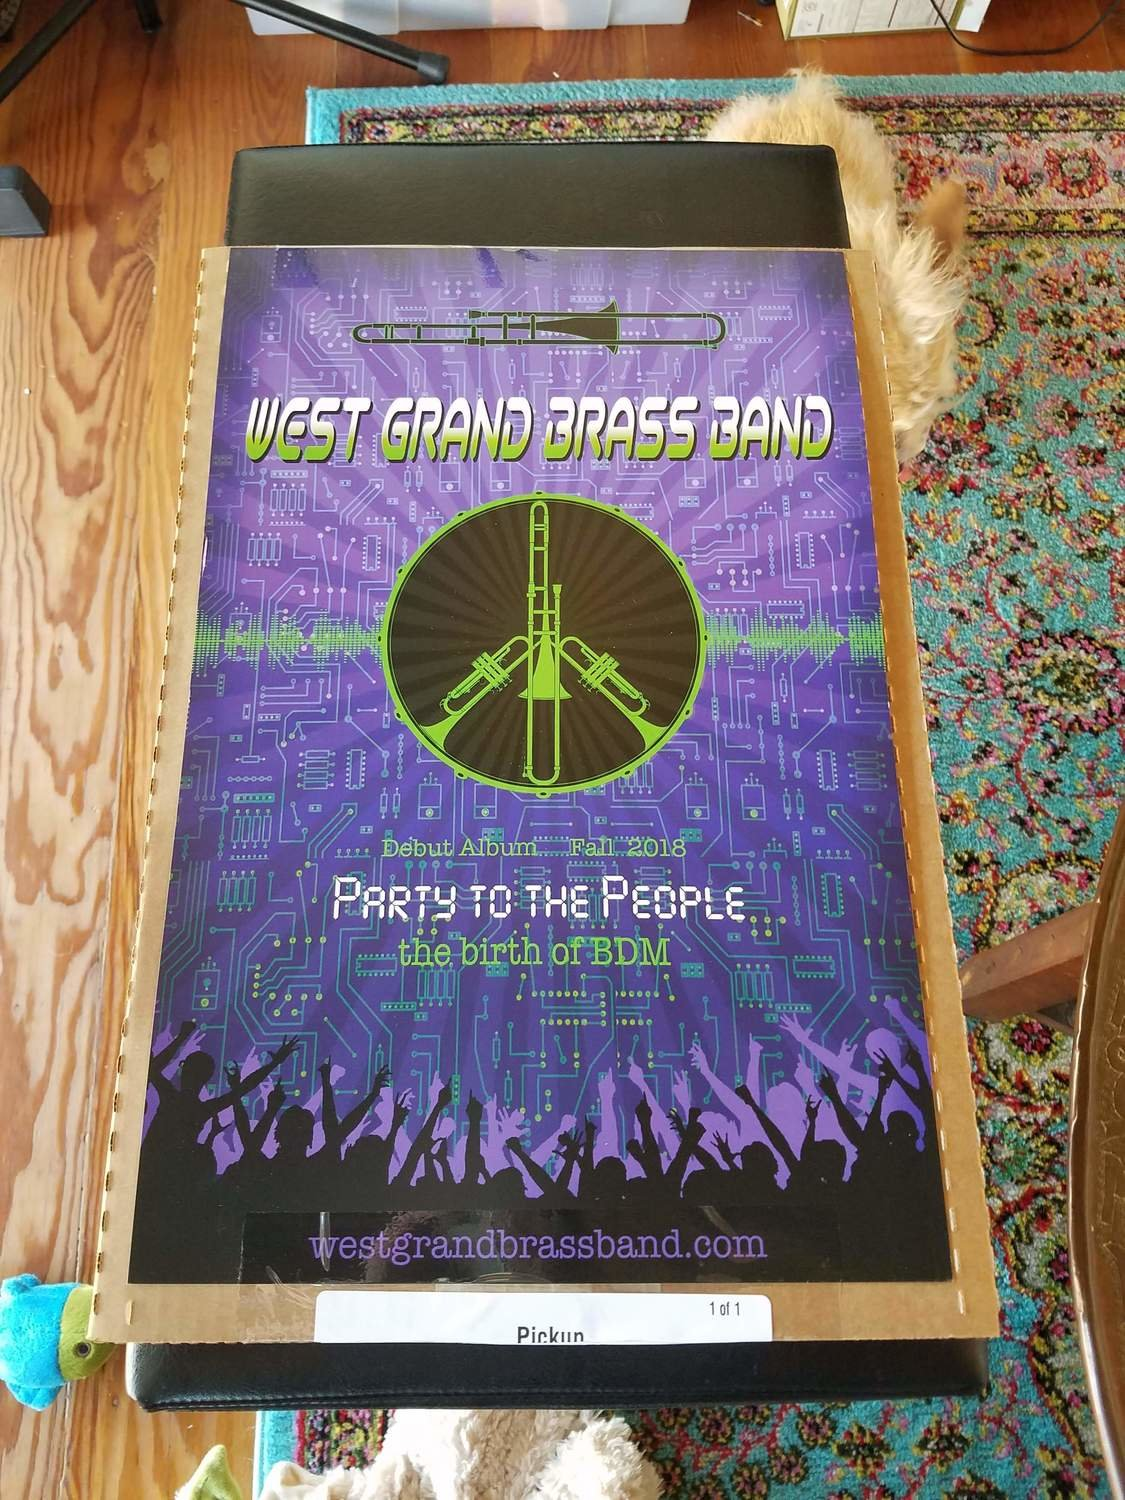 Party to the People Poster